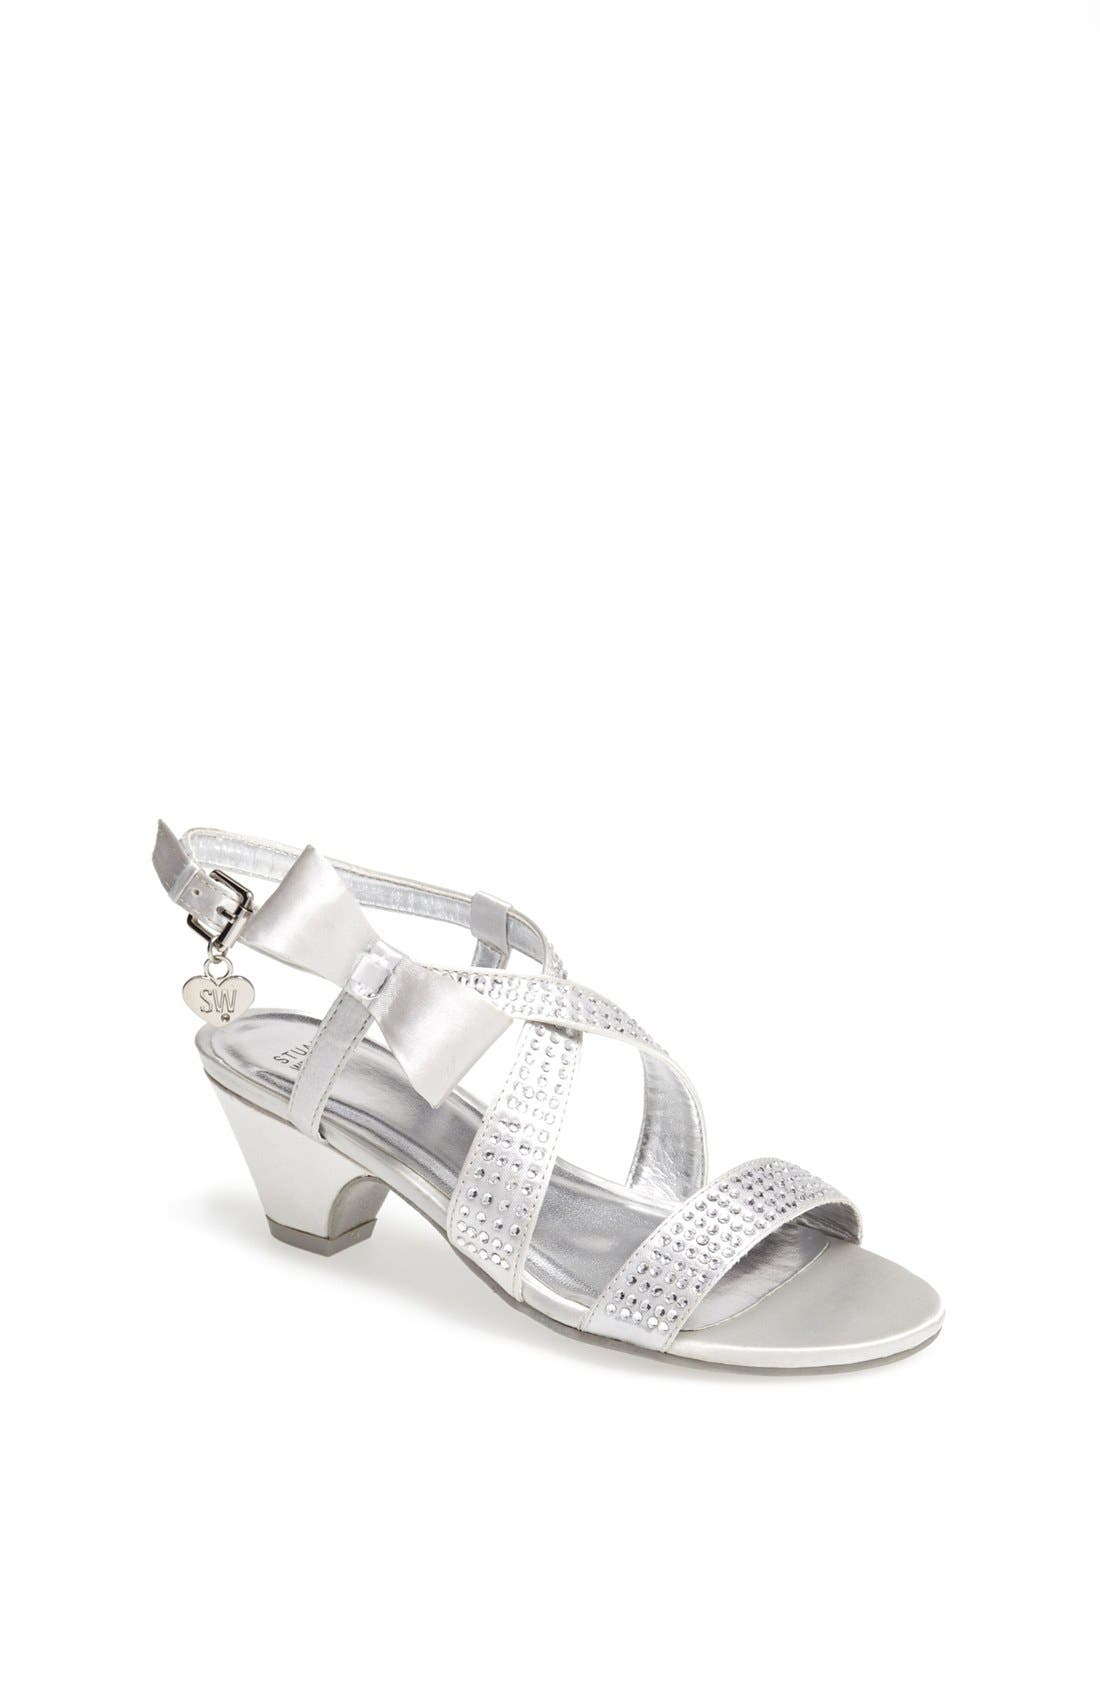 Alternate Image 1 Selected - Stuart Weitzman 'Verna Janie' Sandal (Little Kid & Big Kid)